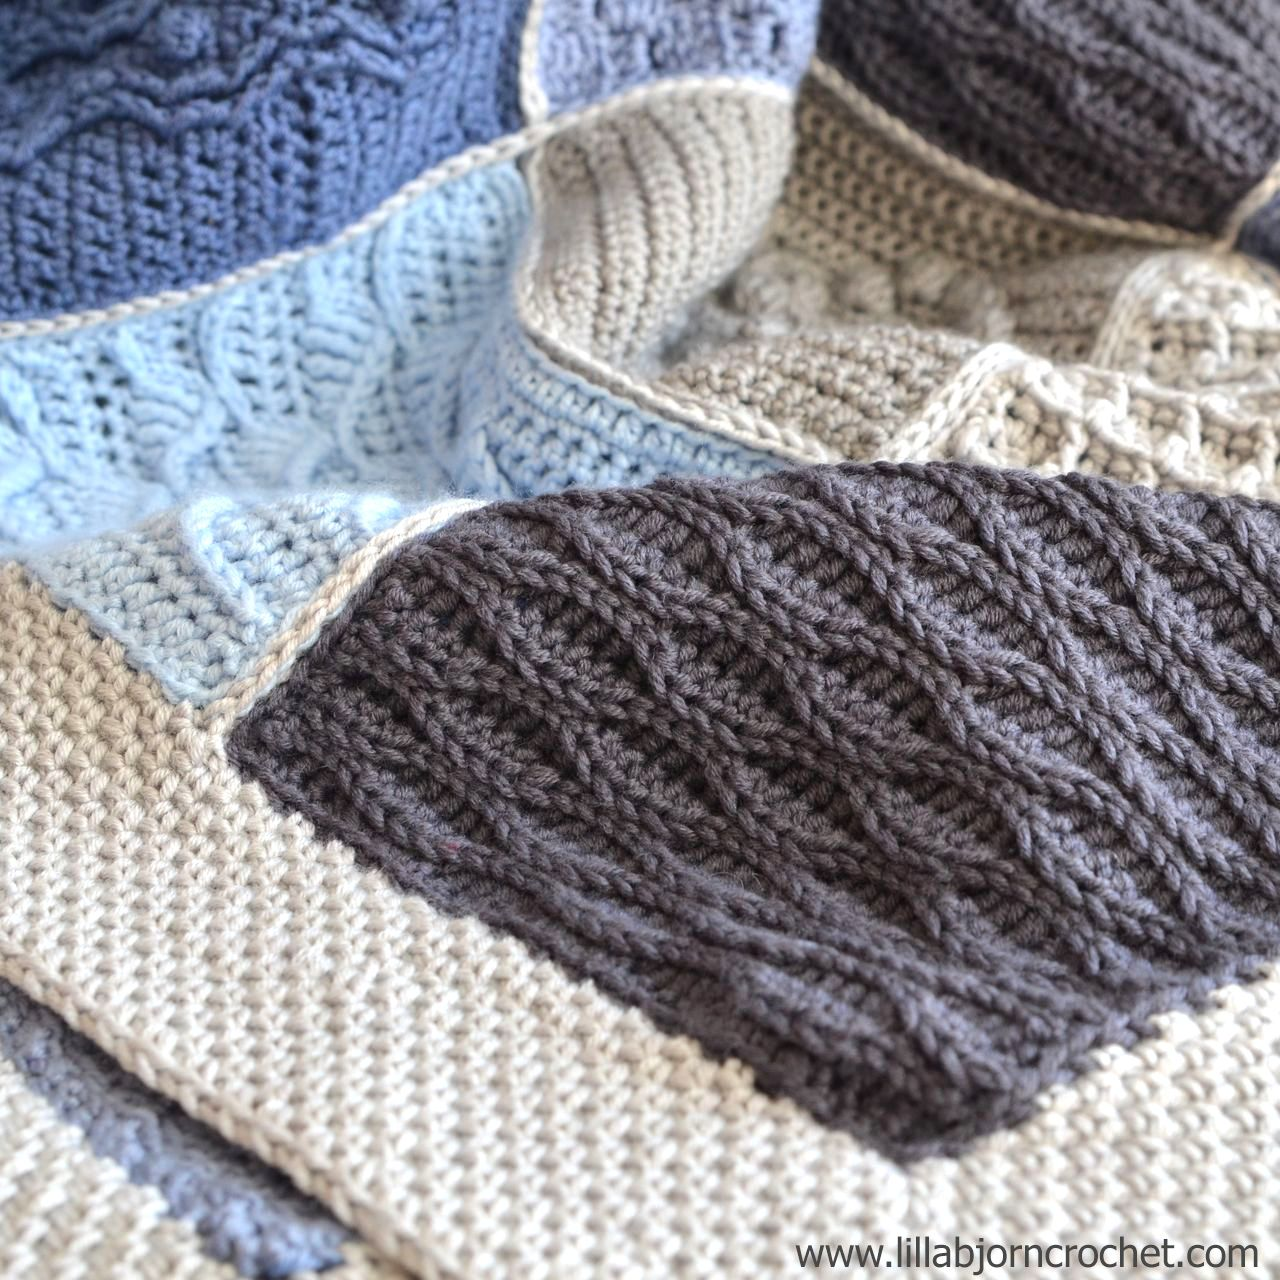 Last dance on the beach scheepjes cal 2016 free crochet last dance on the beach scheepjes cal 2016 free crochet blanket pattern bankloansurffo Image collections